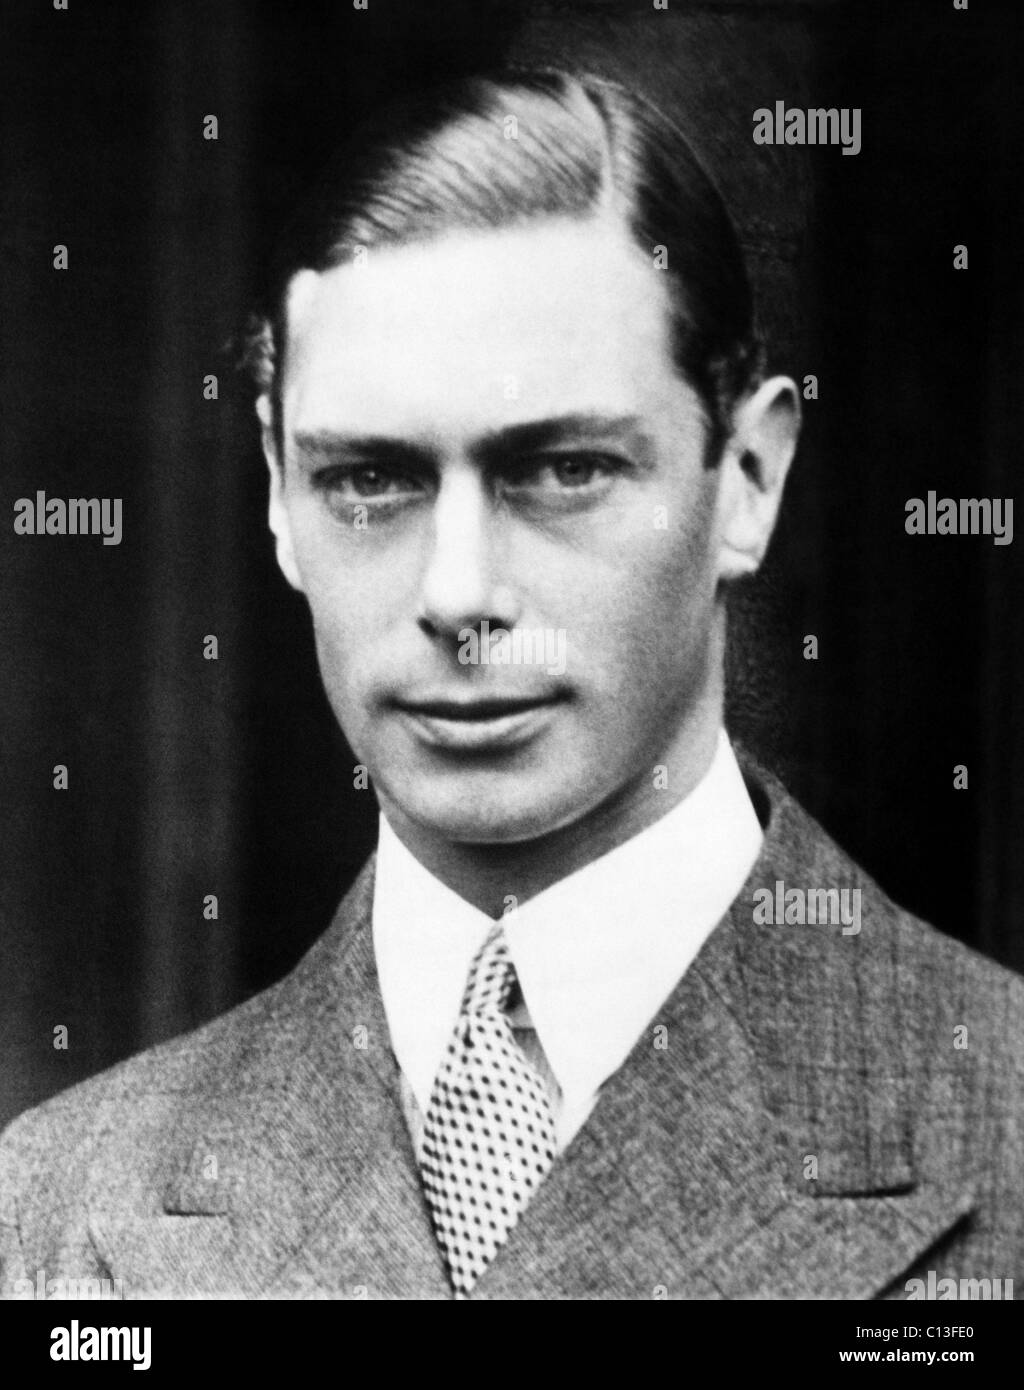 British Royalty. King George VI of England, 1936. - Stock Image